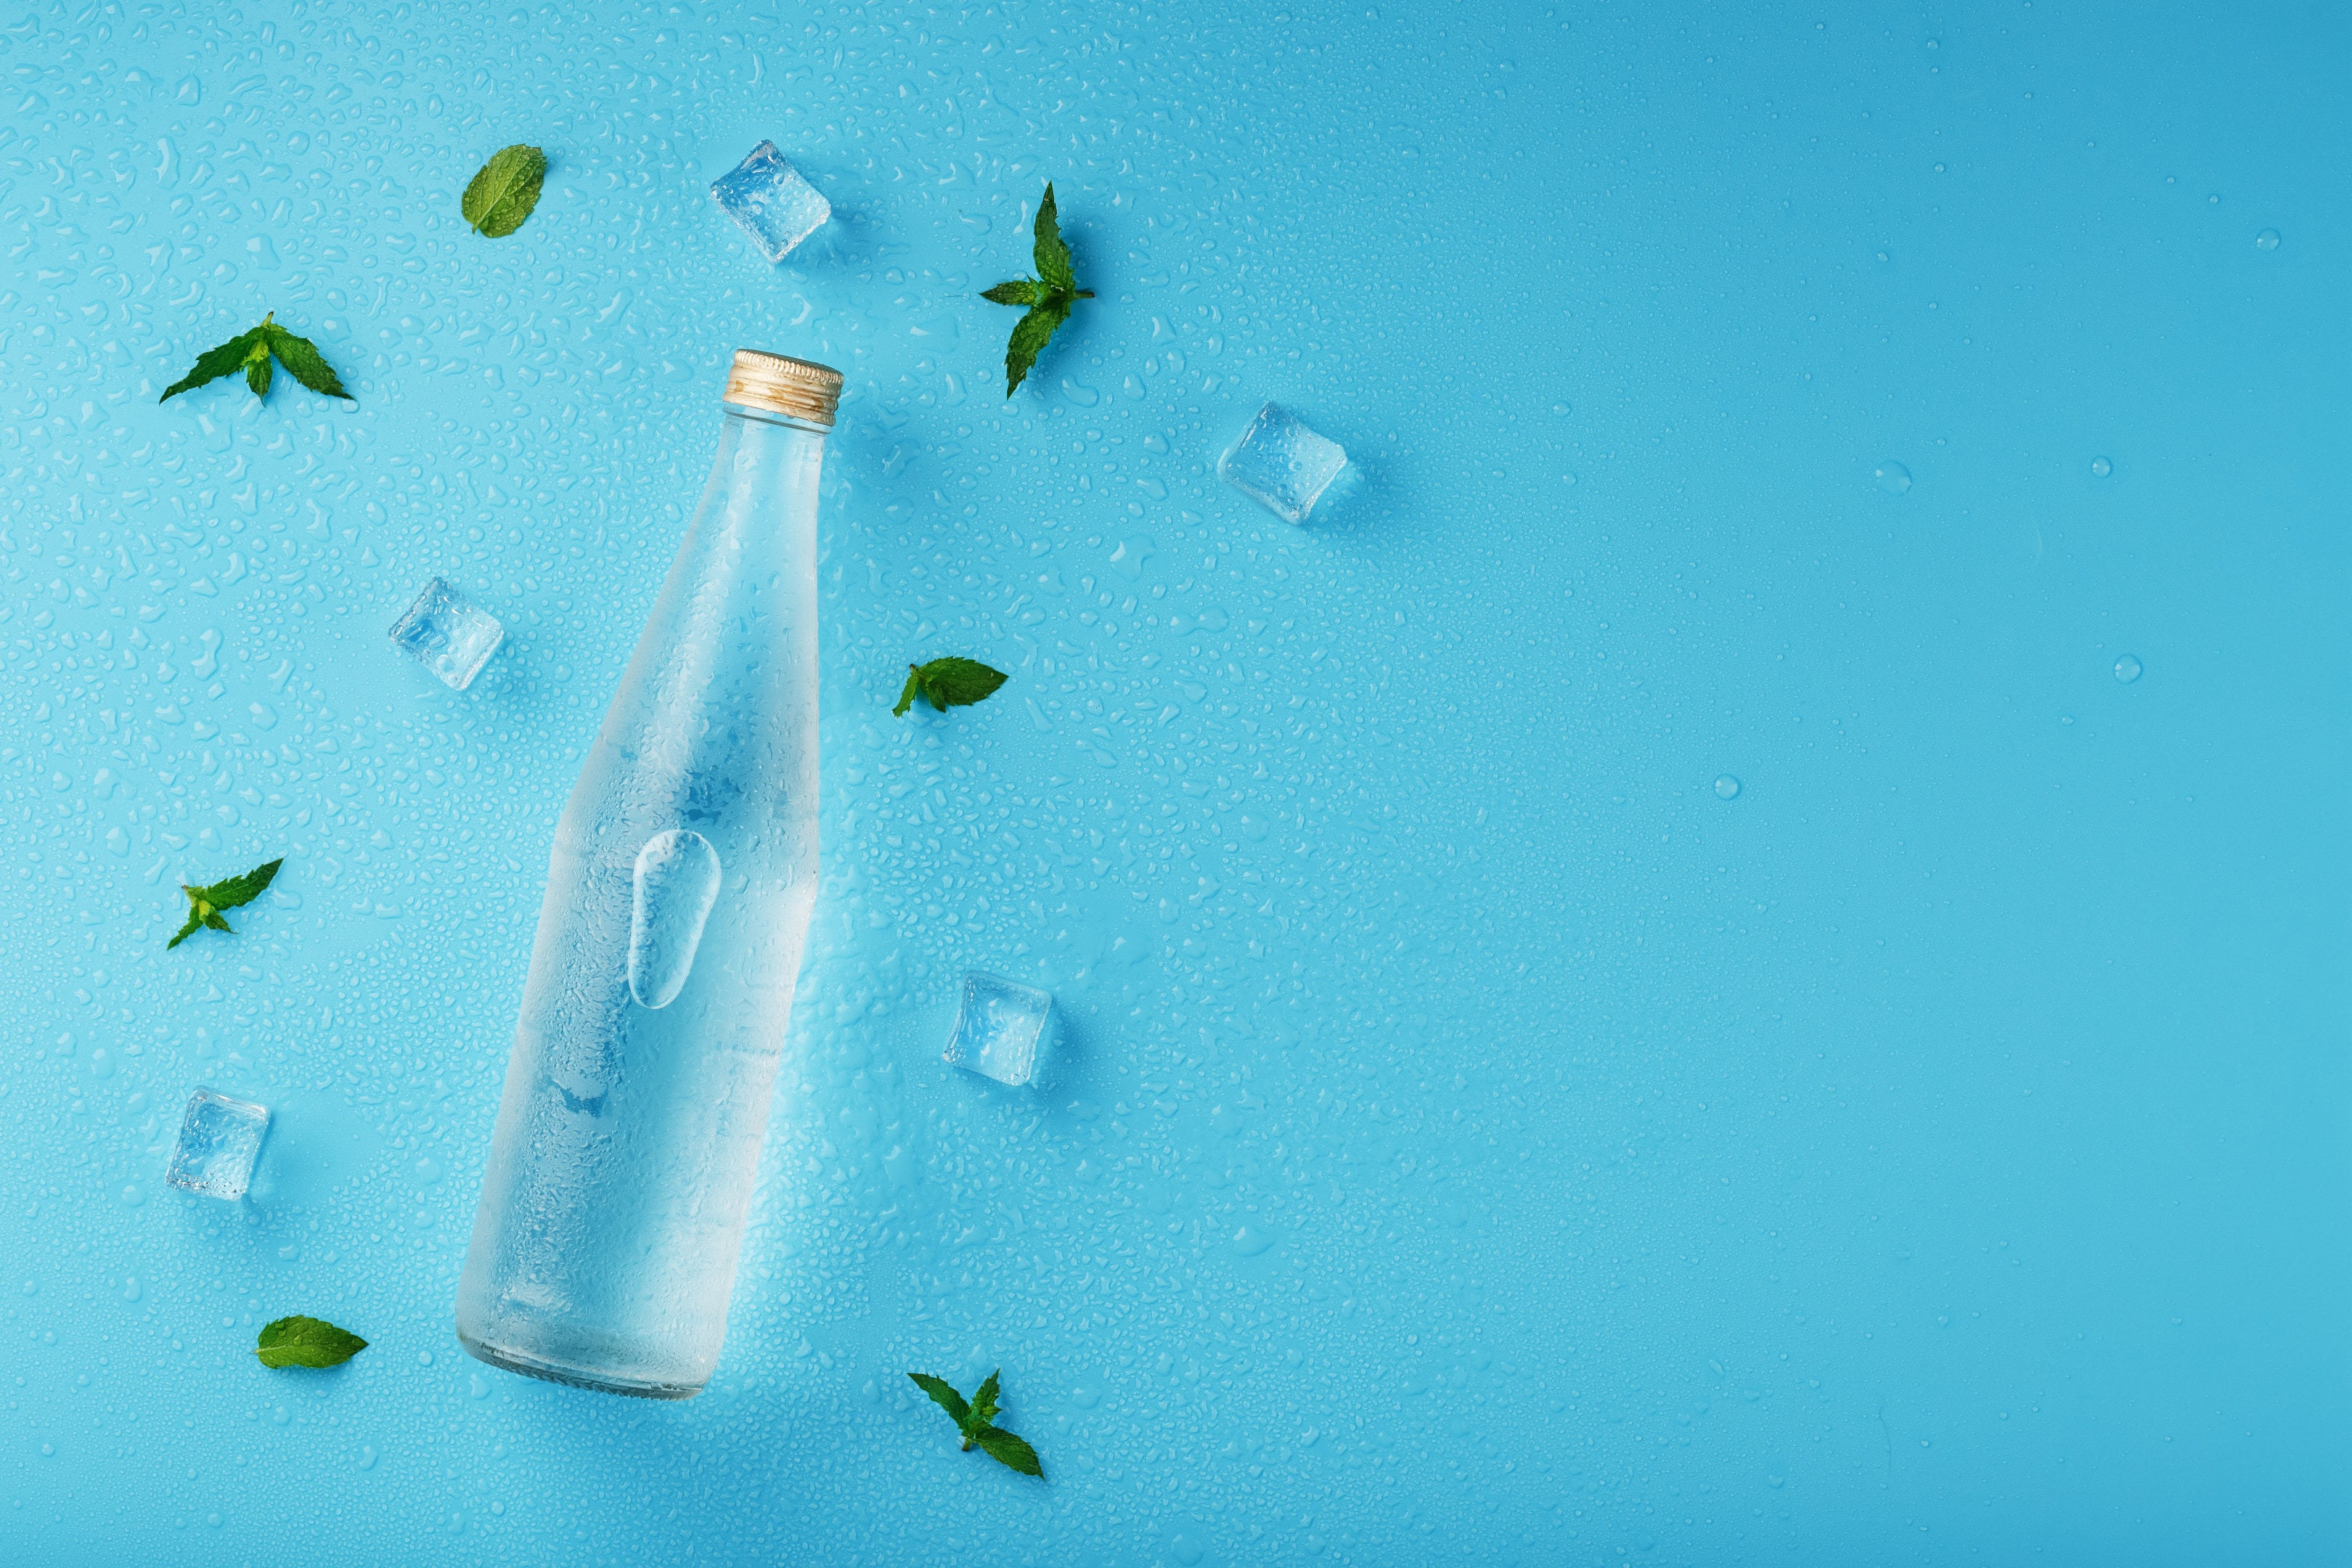 A bottle of ice water, ice cubes and mint leaves on a blue background.